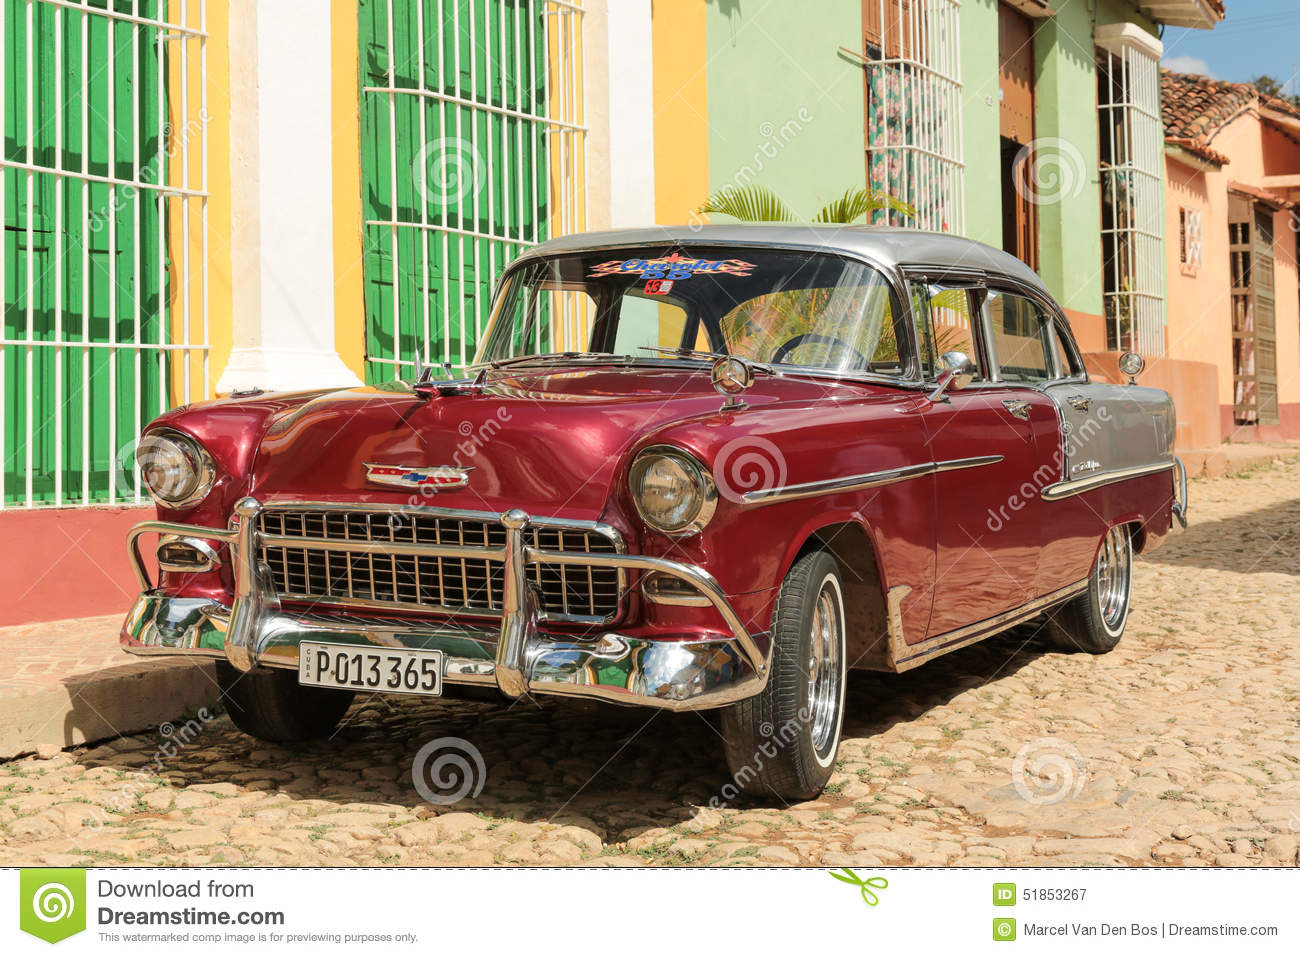 vieille voiture cubaine dans la rue photographie ditorial. Black Bedroom Furniture Sets. Home Design Ideas